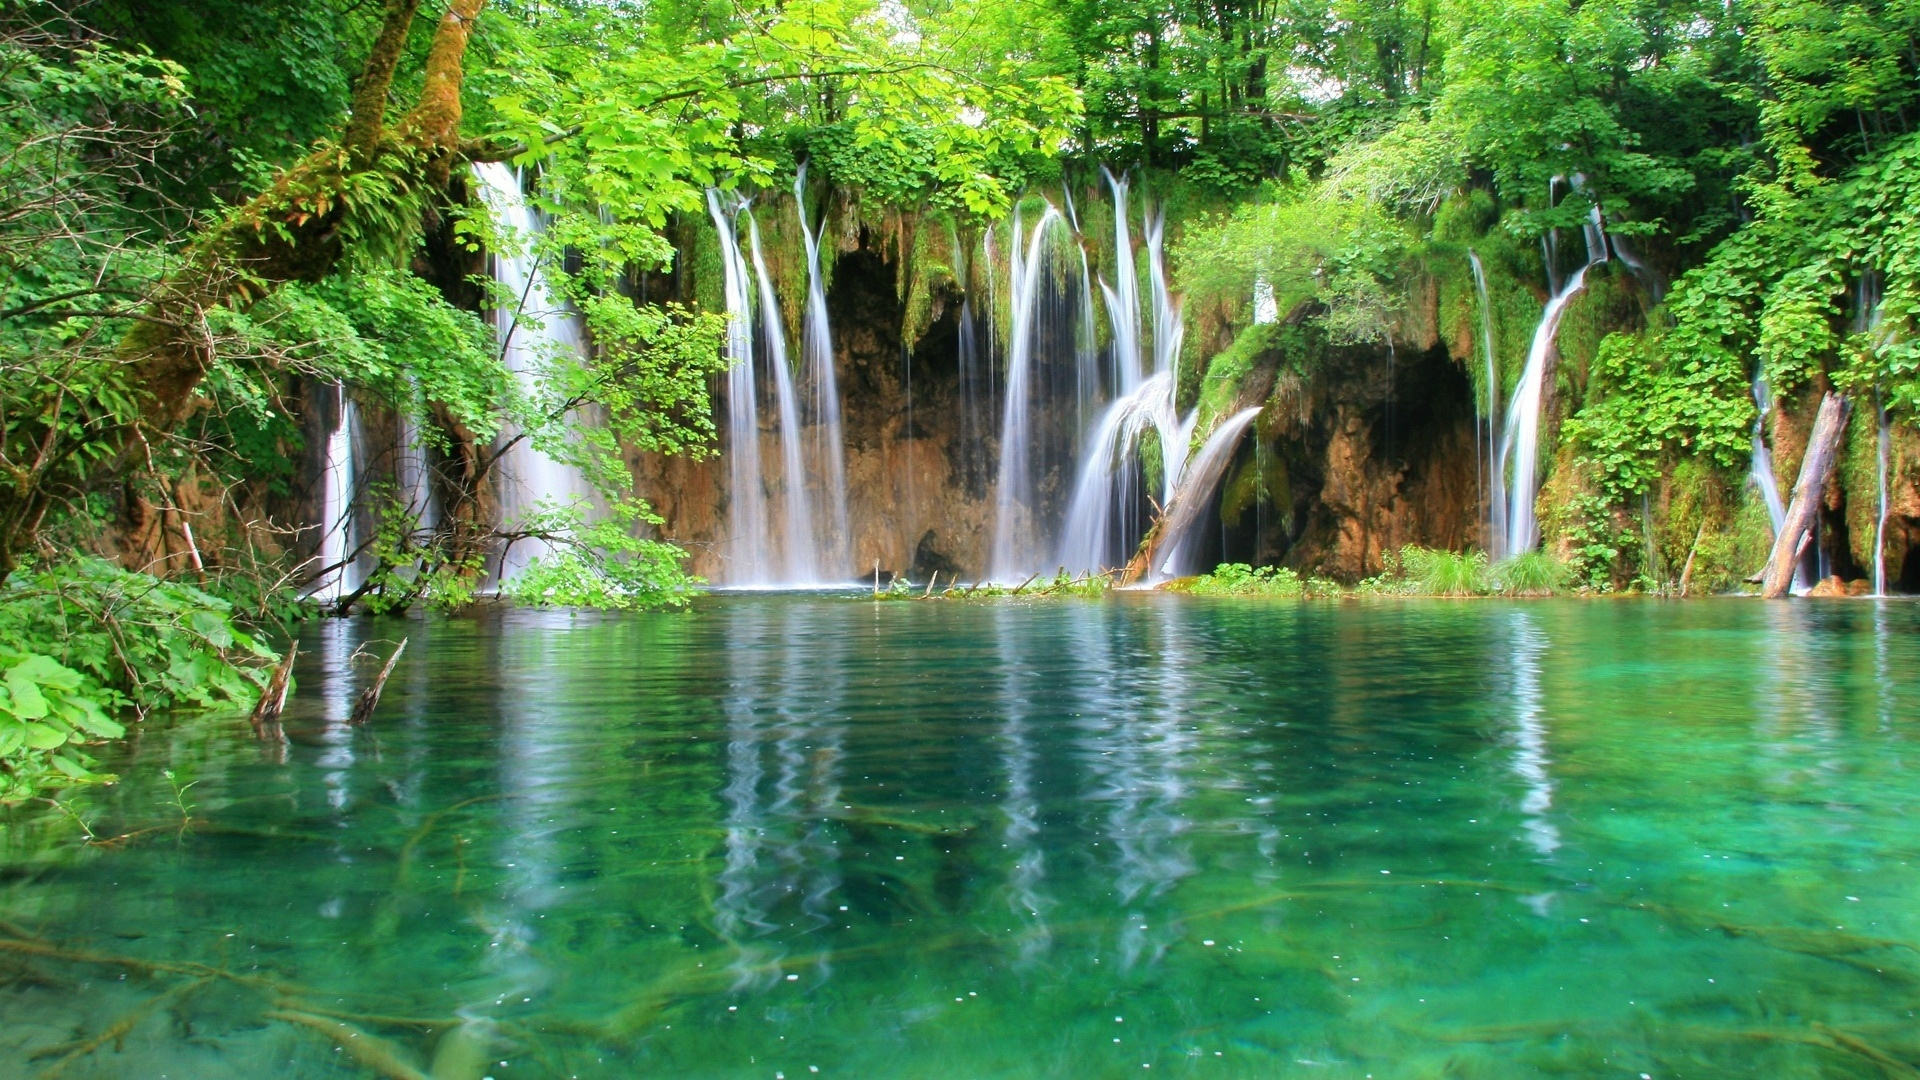 35069 download wallpaper Landscape, Rivers, Waterfalls screensavers and pictures for free